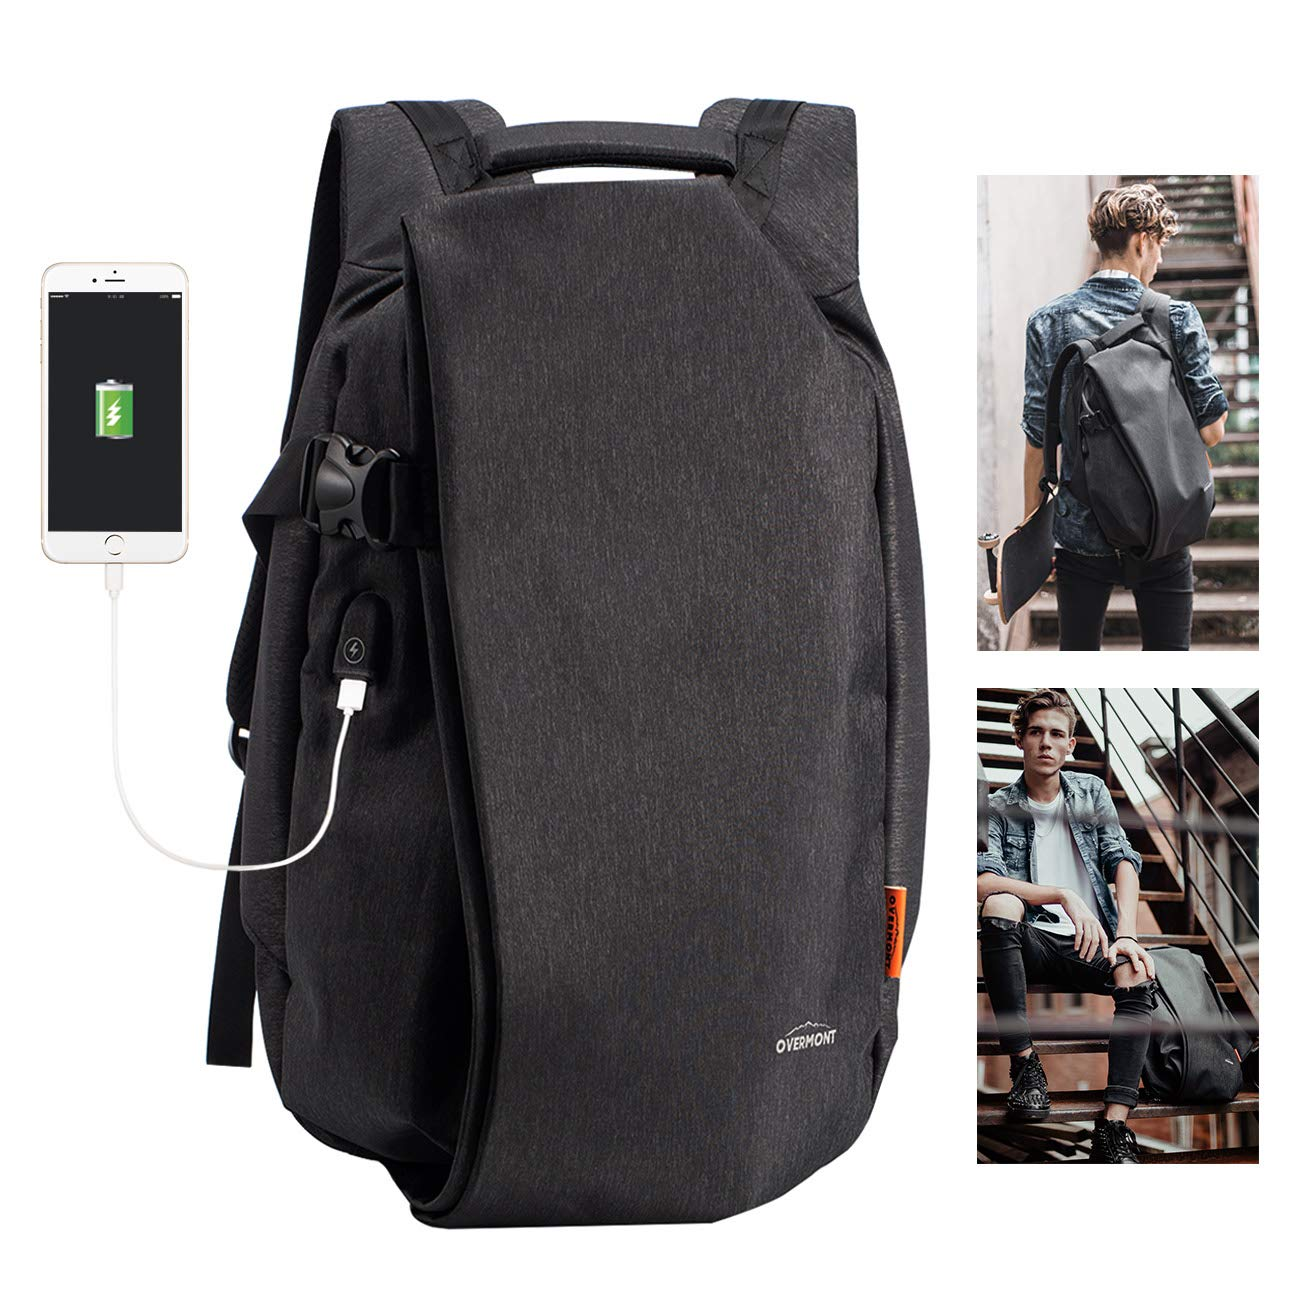 Overmont Tactical Backpack For Travel